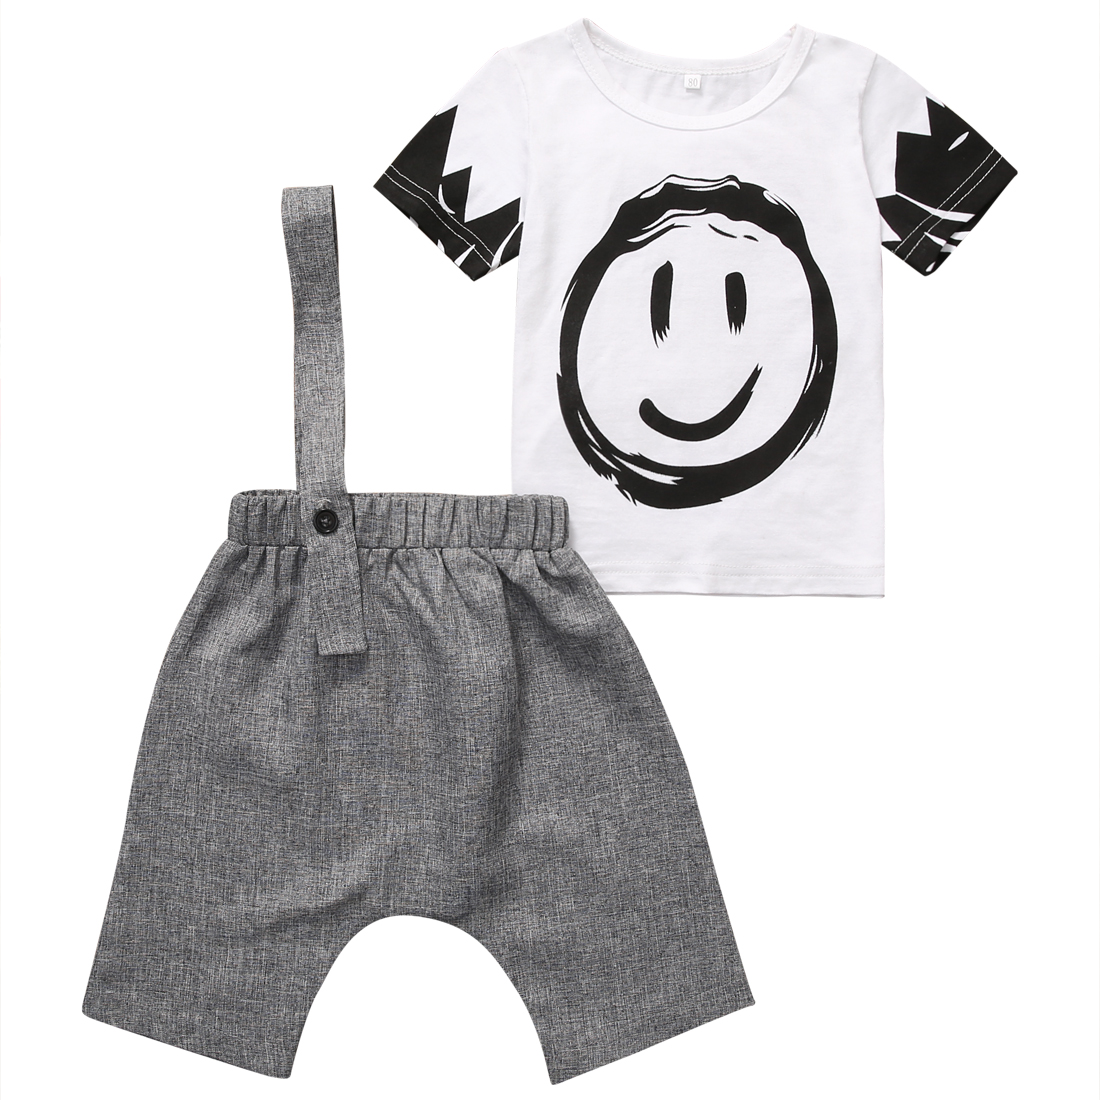 Summer 2018 Newborn Baby Boy Clothes Short Sleeve Cotton T-shirt Tops + Harem Overalls 2PCS Outfit Toddler Kids Clothing Set 2pcs newborn baby boys clothes set gold letter mamas boy outfit t shirt pants kids autumn long sleeve tops baby boy clothes set